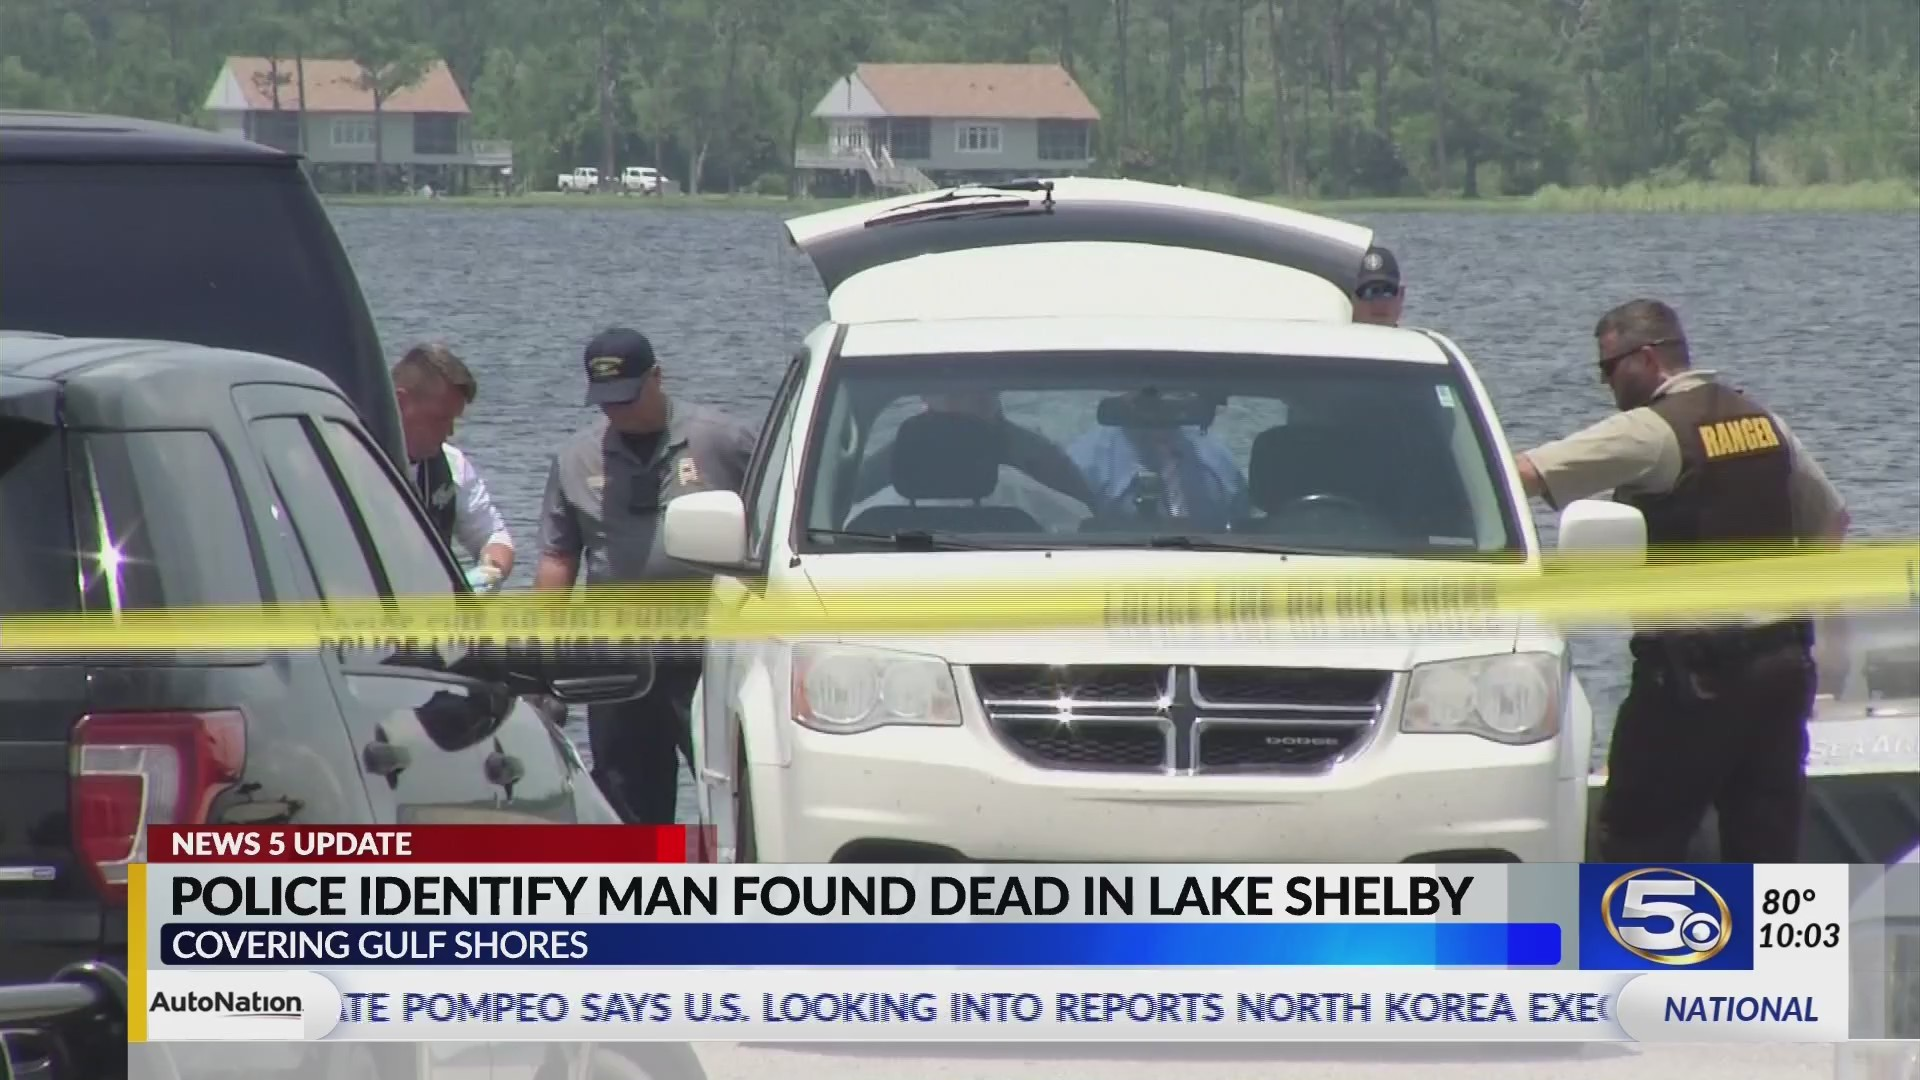 Autopsy Report: Man found in Lake Shelby drowned